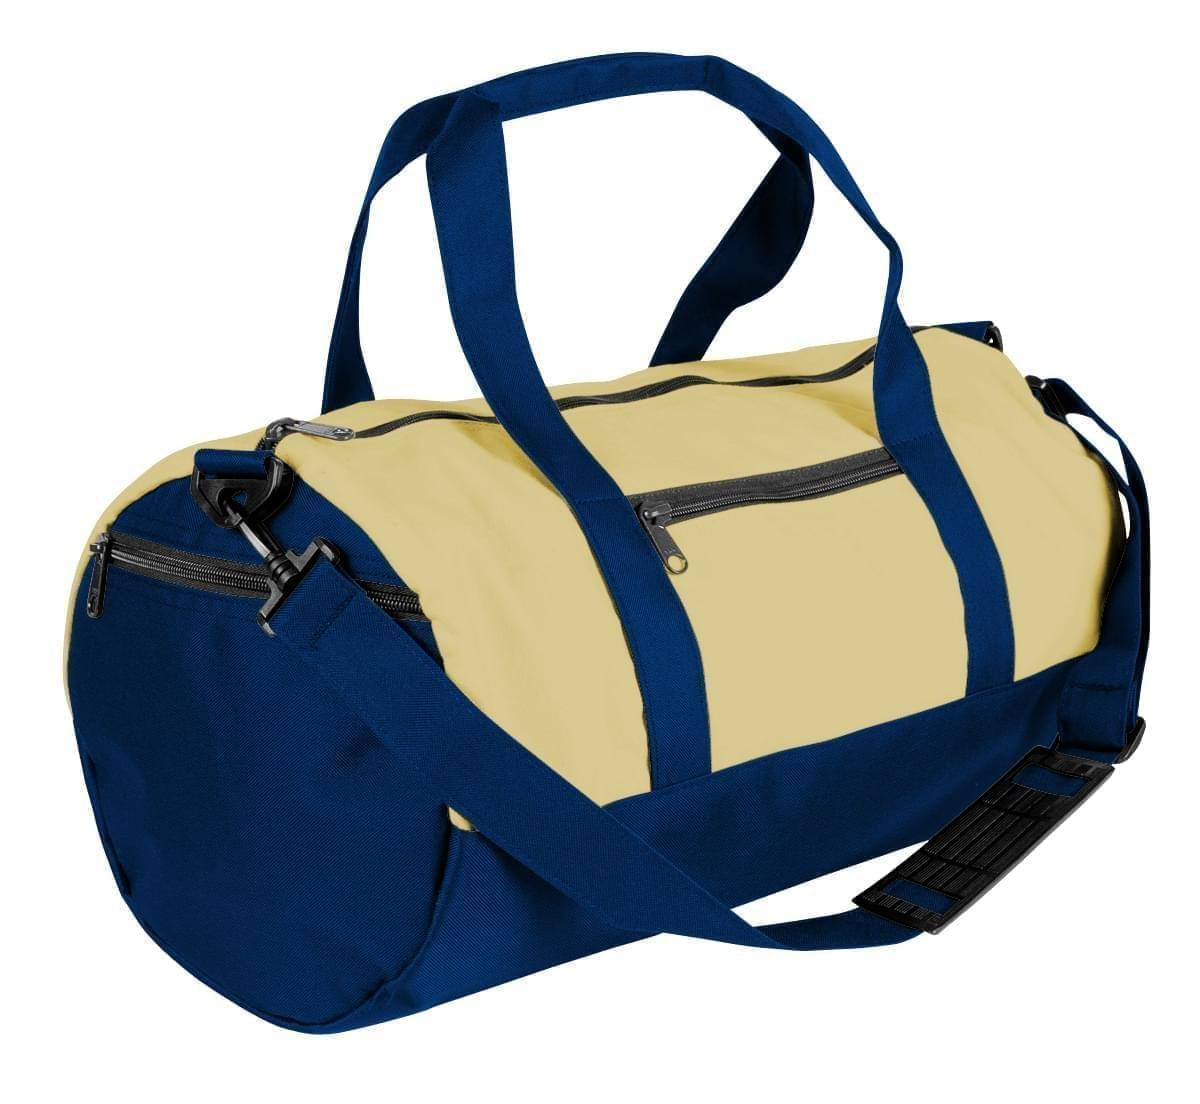 USA Made Heavy Canvas Athletic Barrel Bags, Natural-Navy, PMLXZ2AAVZ